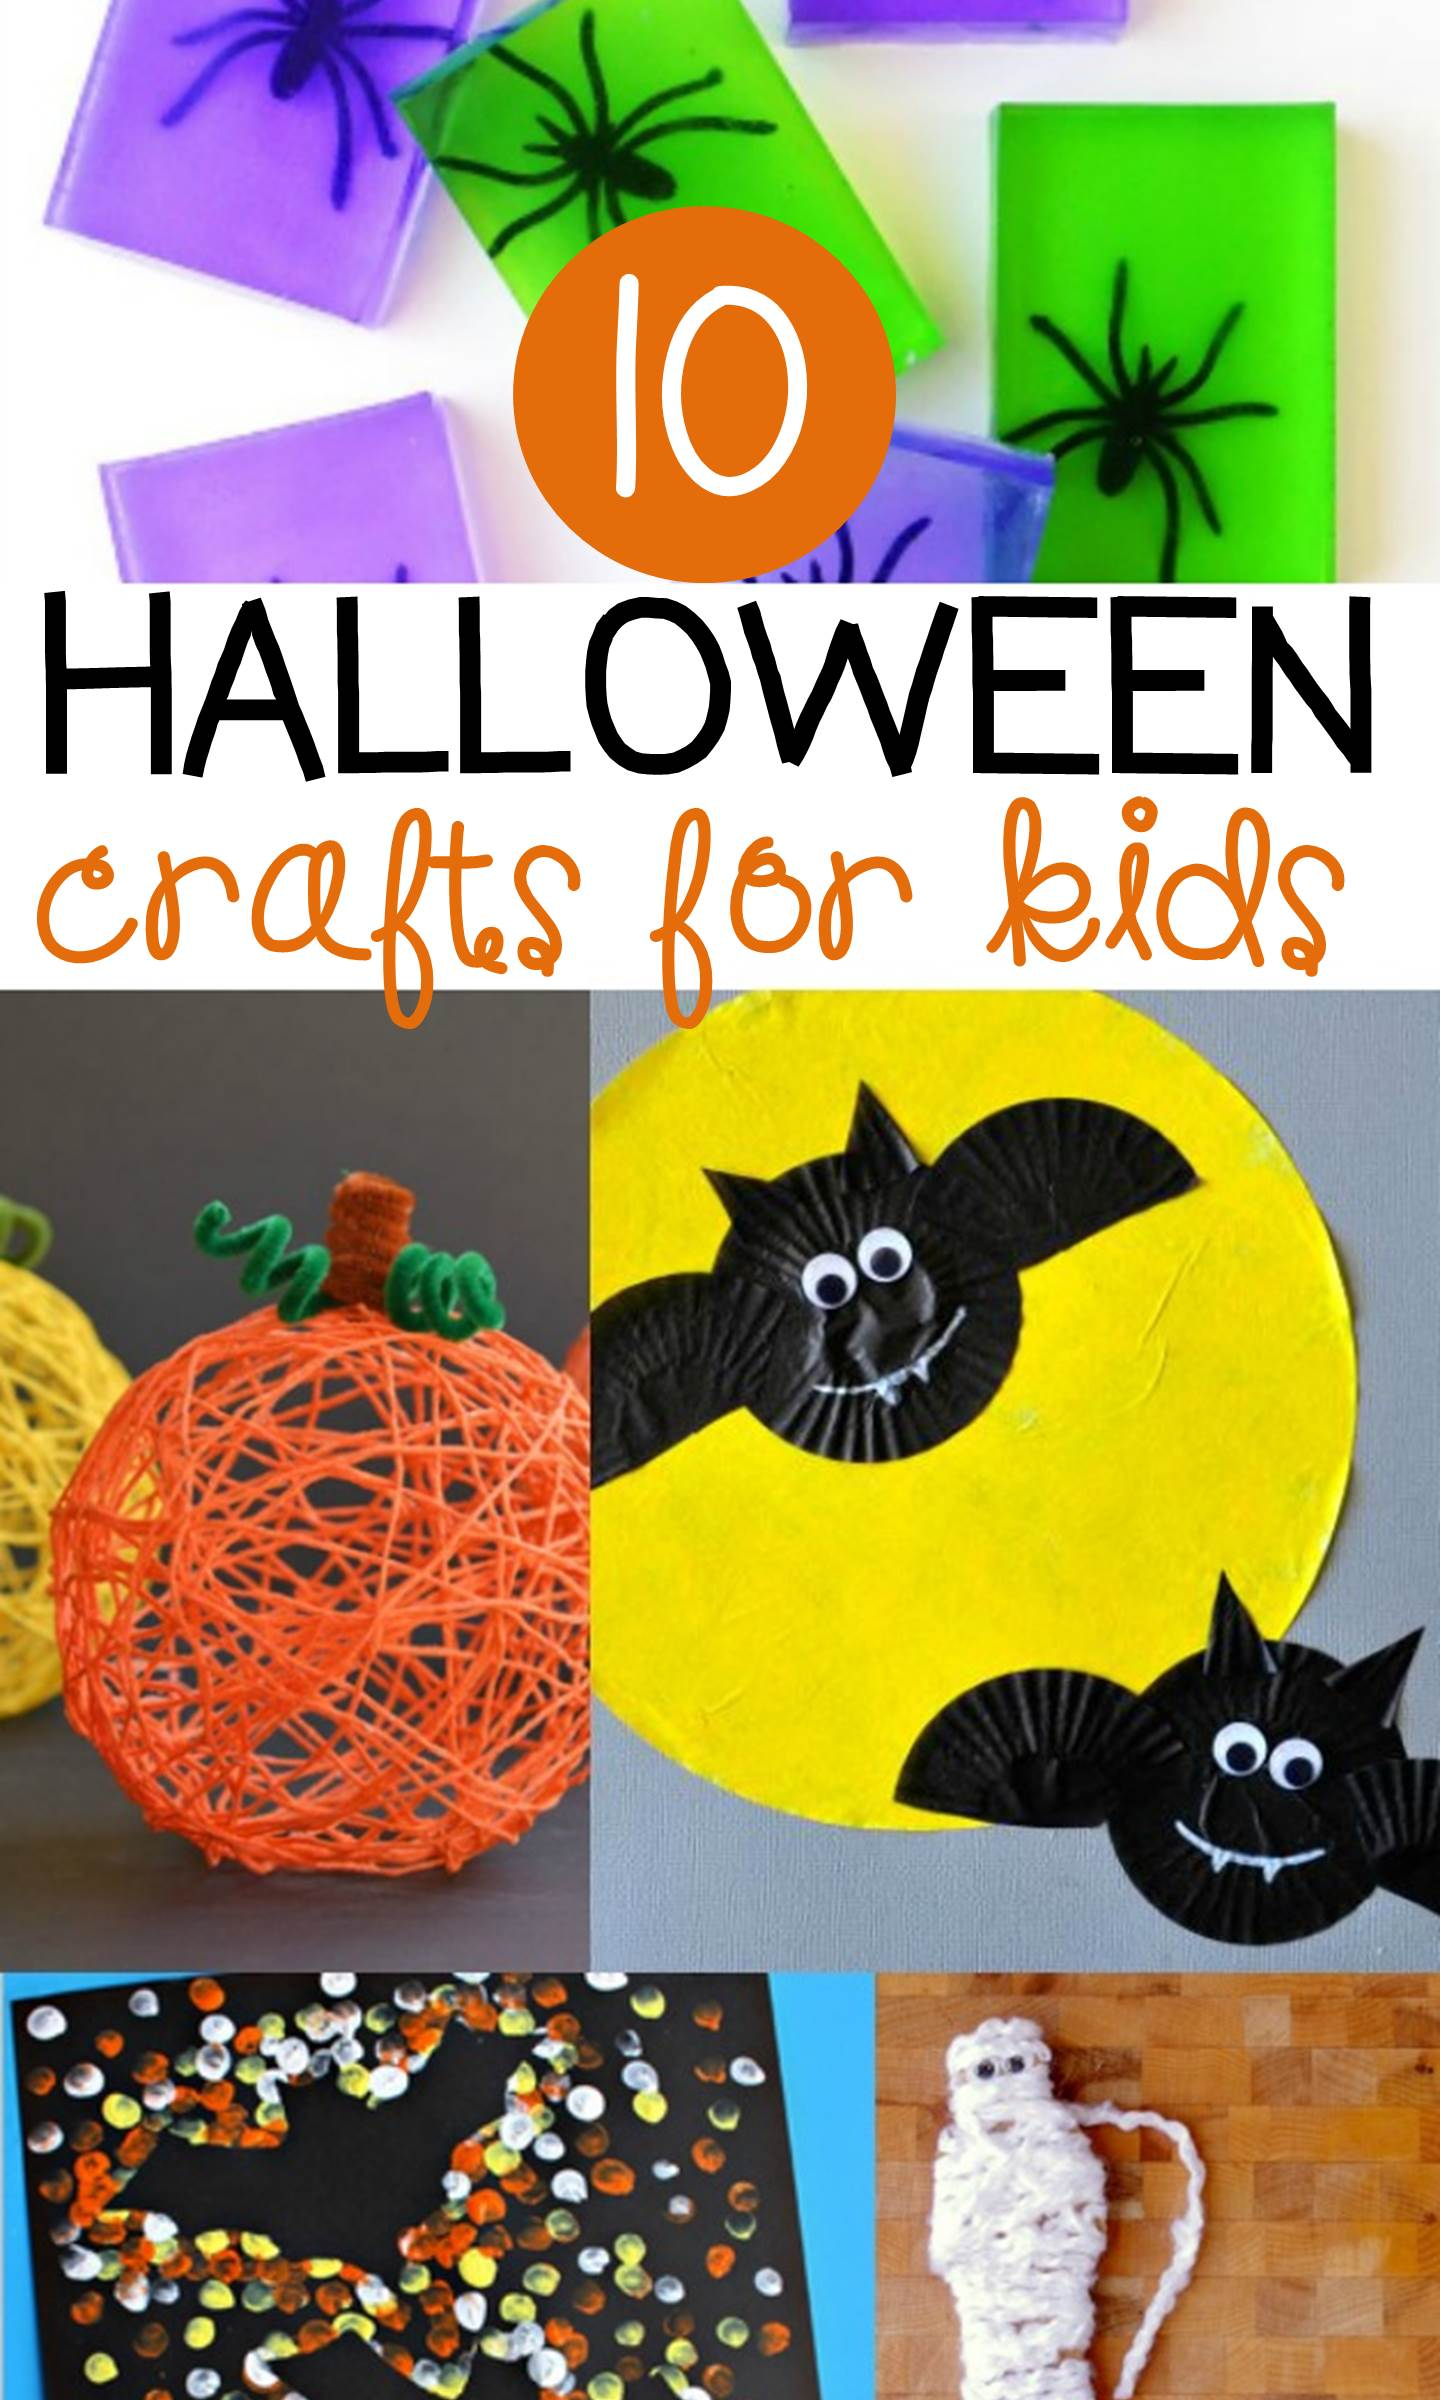 These Halloween crafts for kids are fun and not so spooky! Perfect for kids to create in October at home or in the classroom.